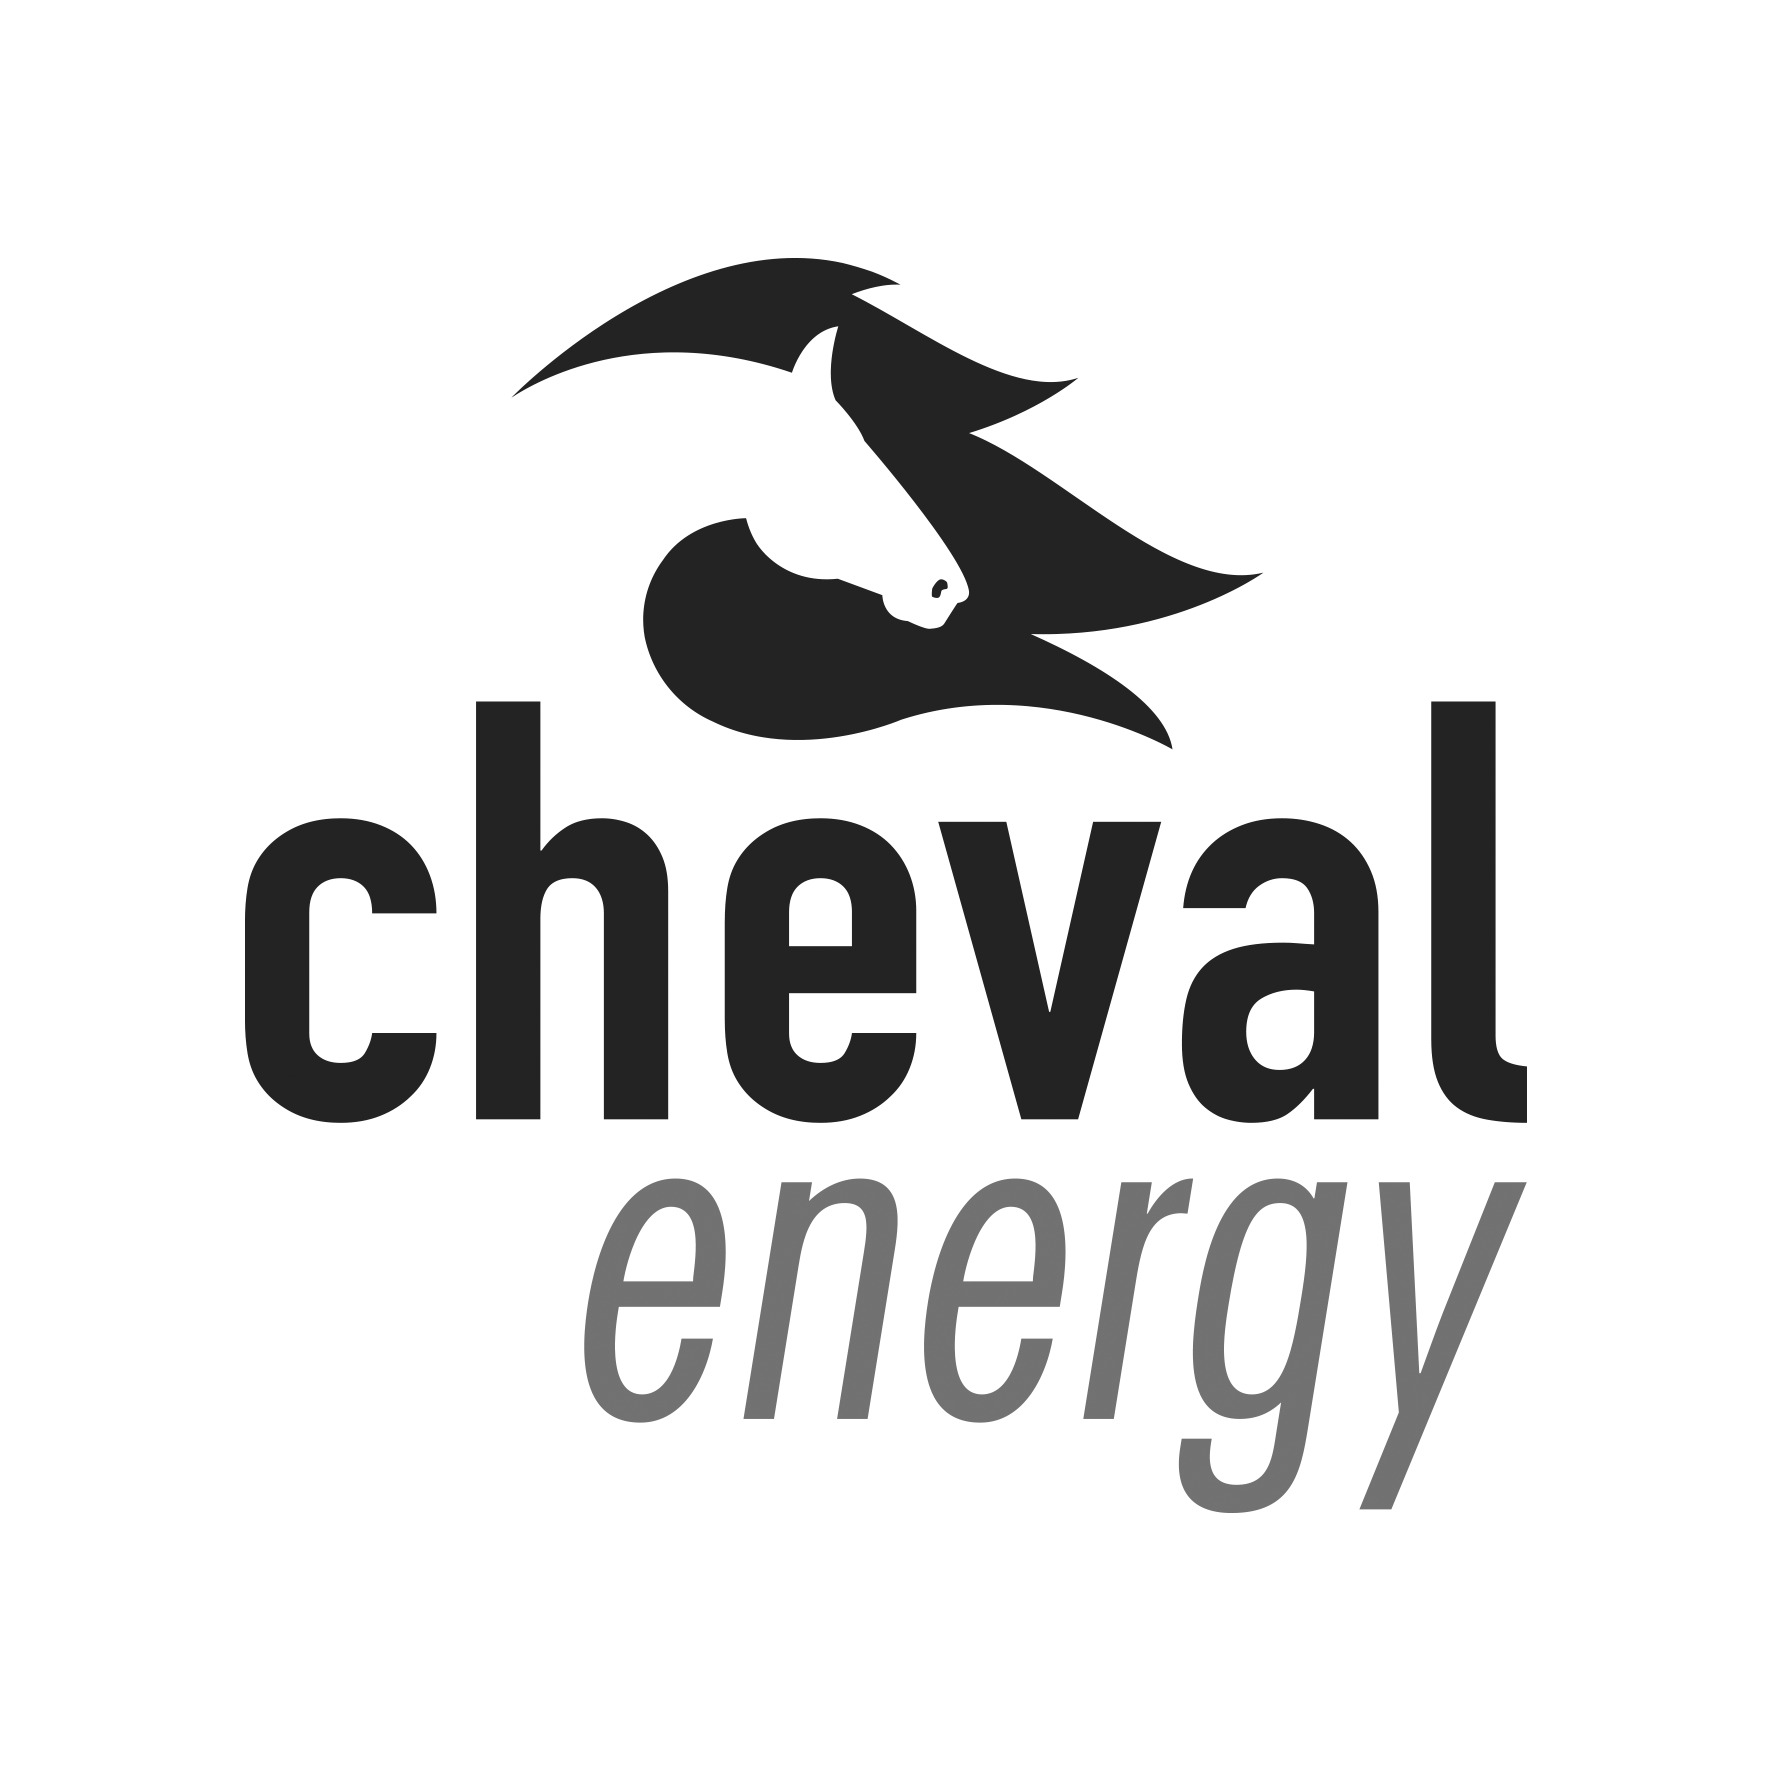 Cheval Energy logo